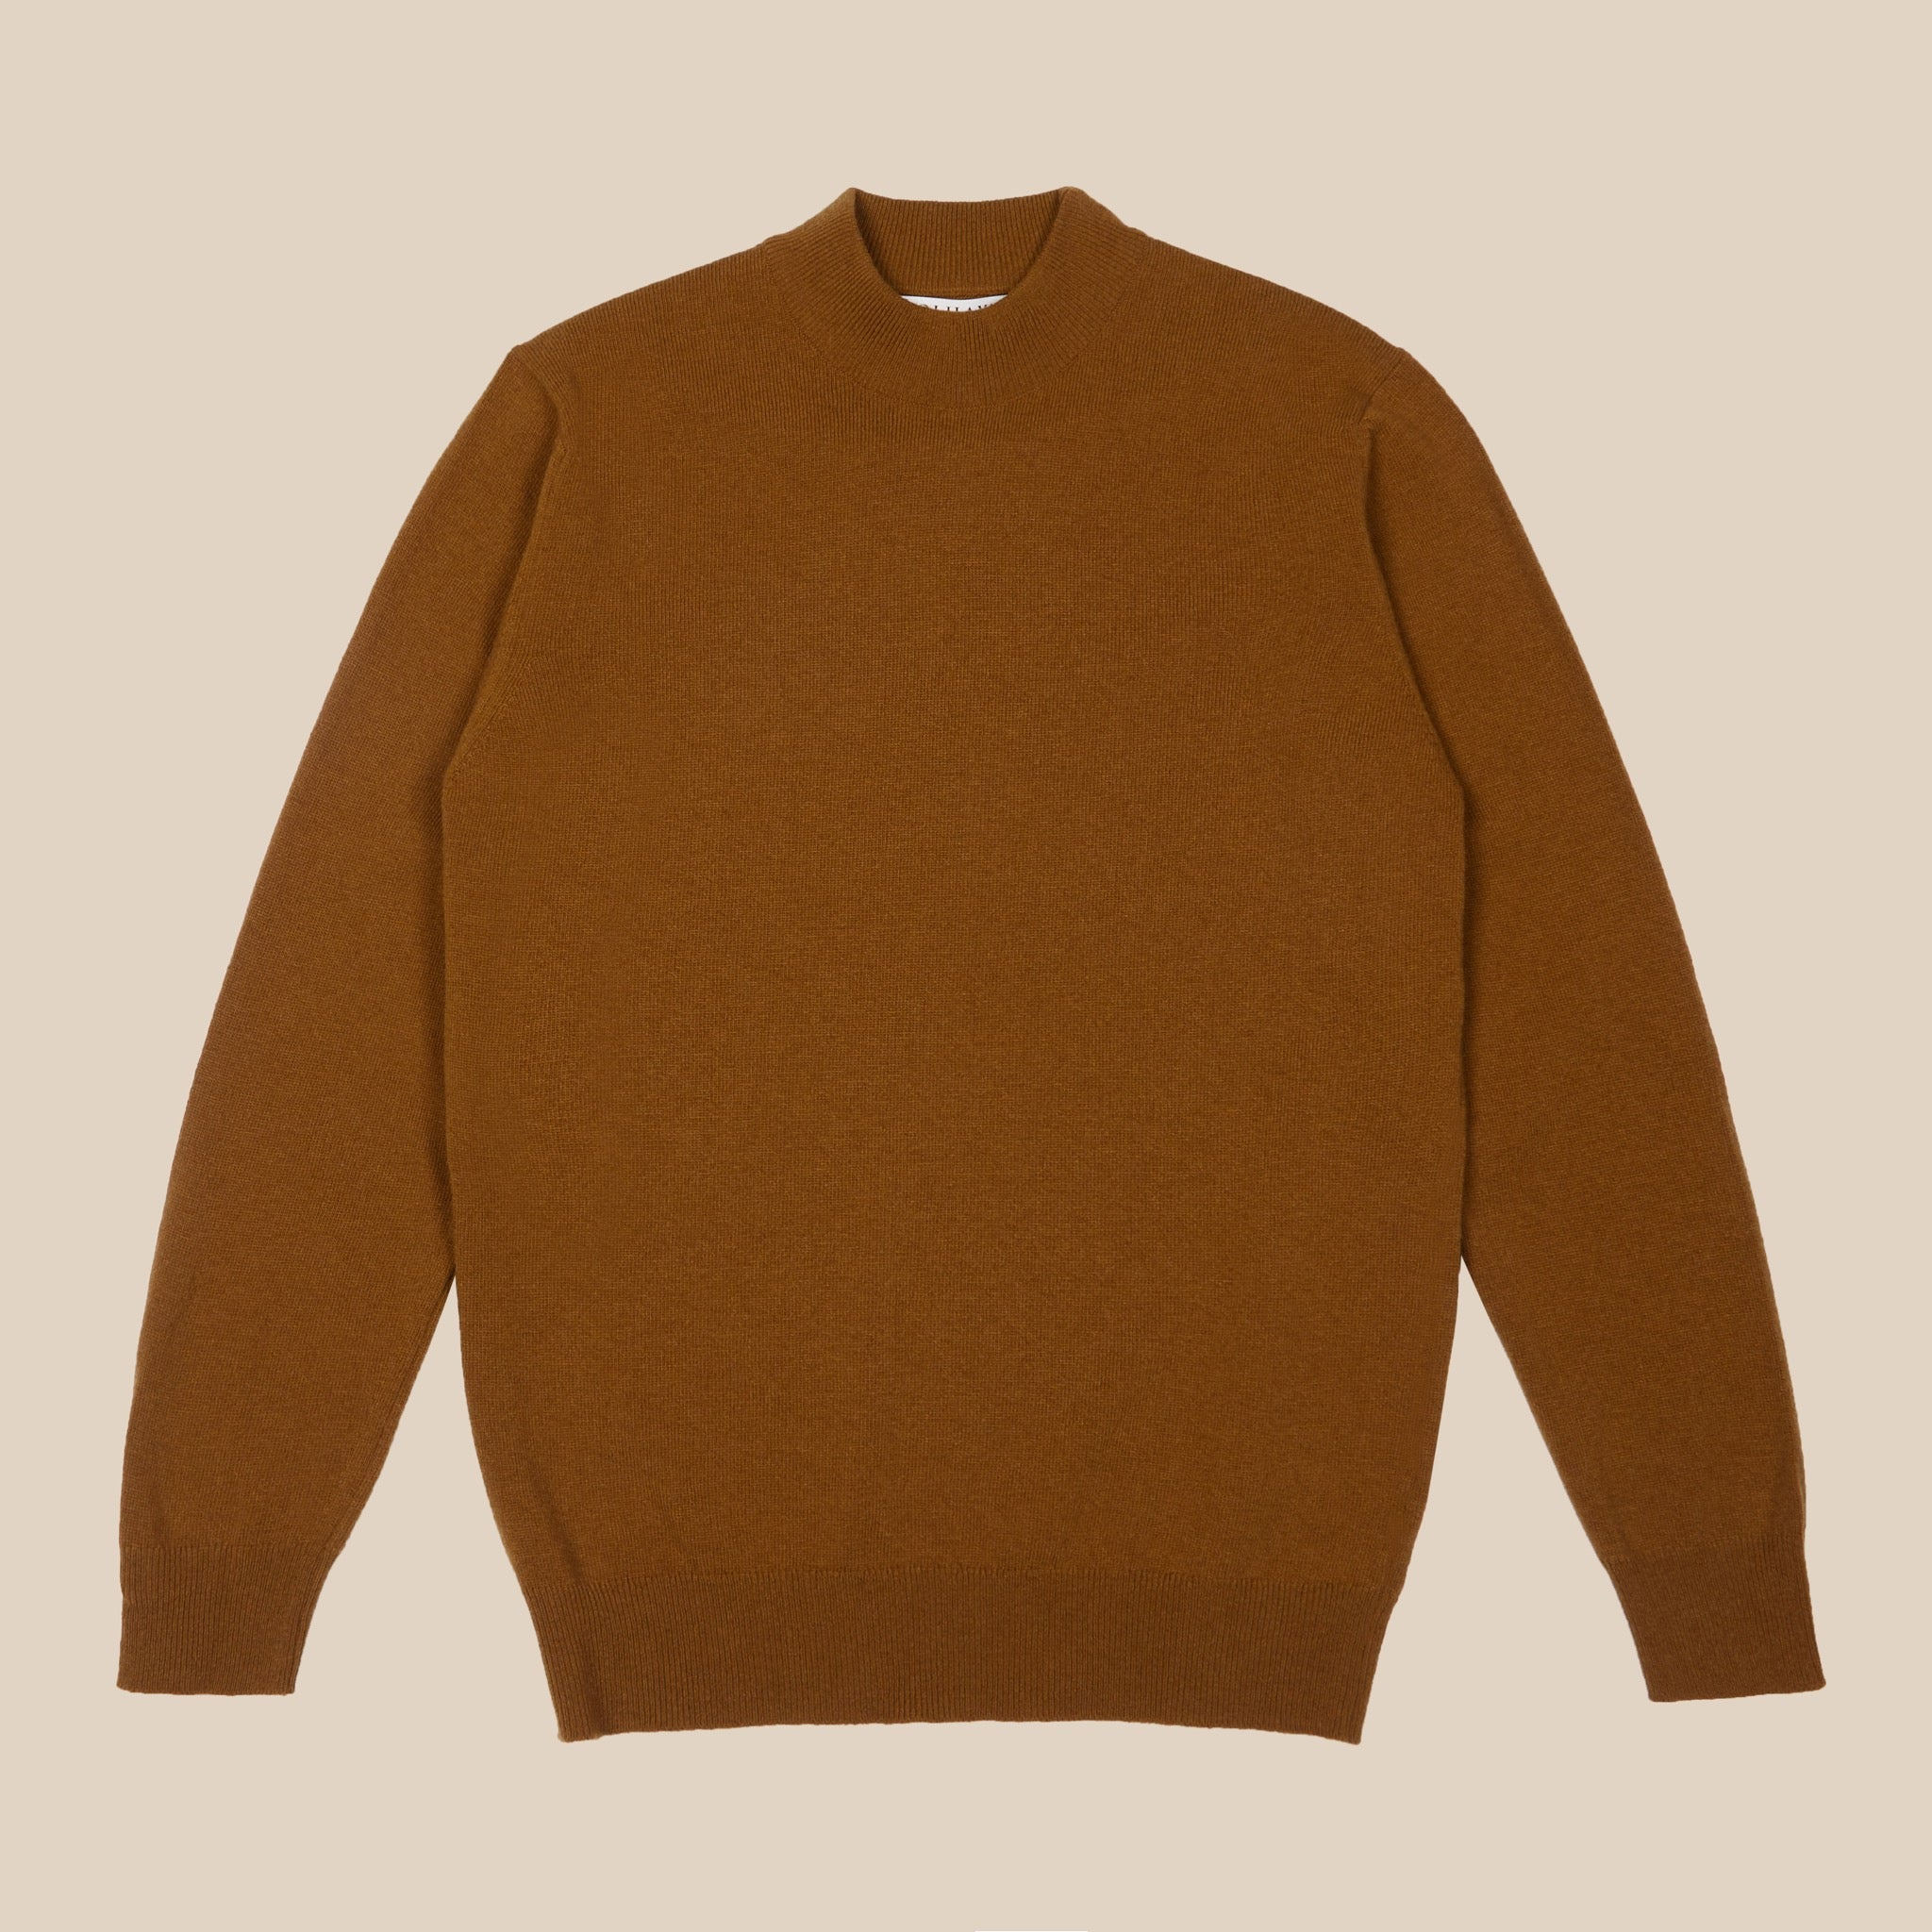 Superfine lambswool mock neck in vintage camel